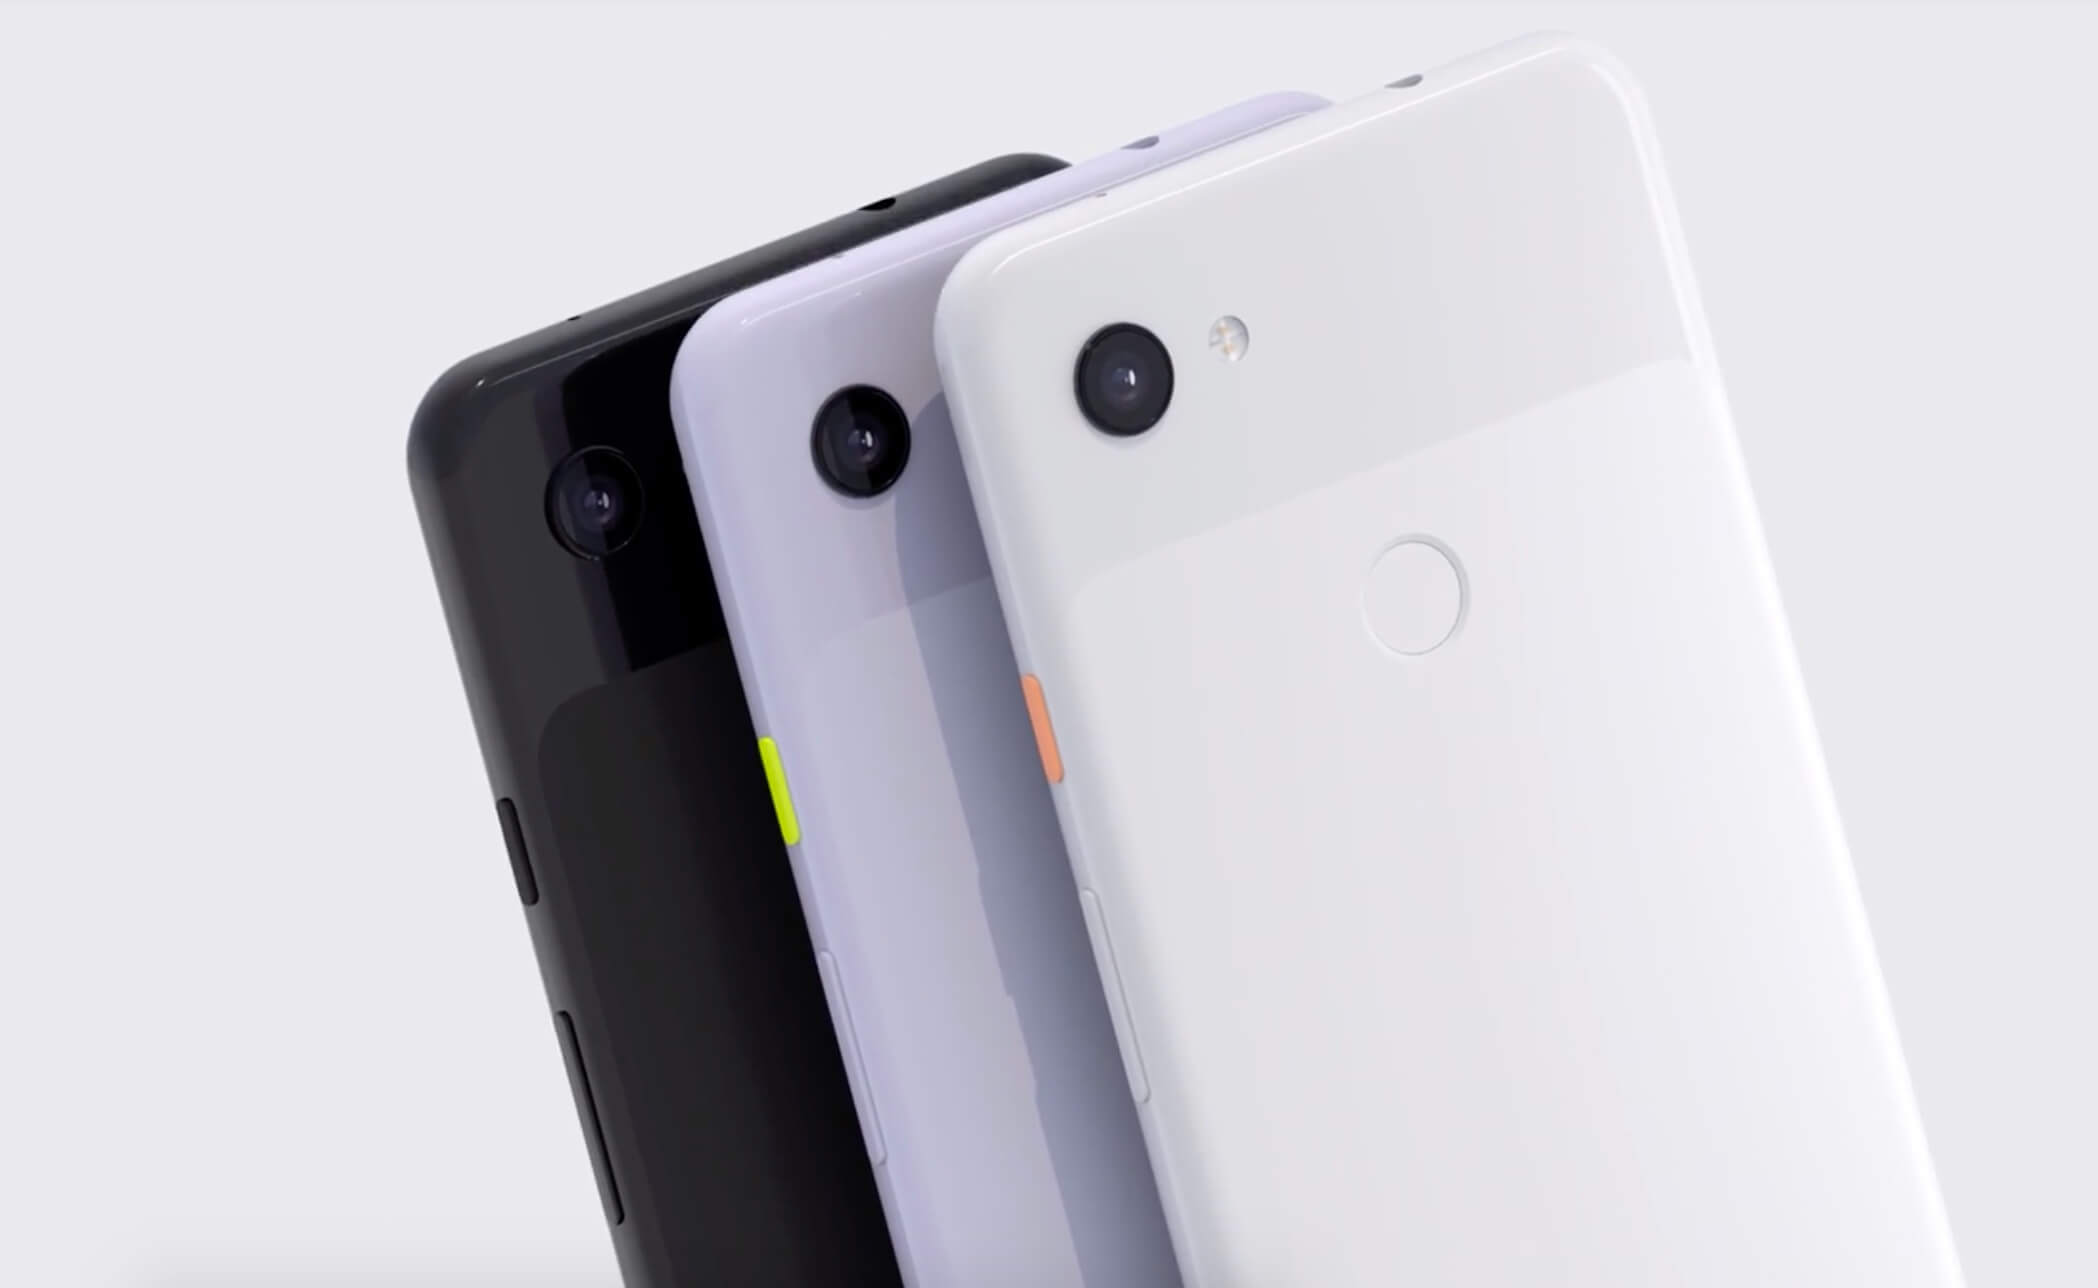 Google Pixel 3a, Pixel 3a XL users are reporting sudden, unexpected shutdowns